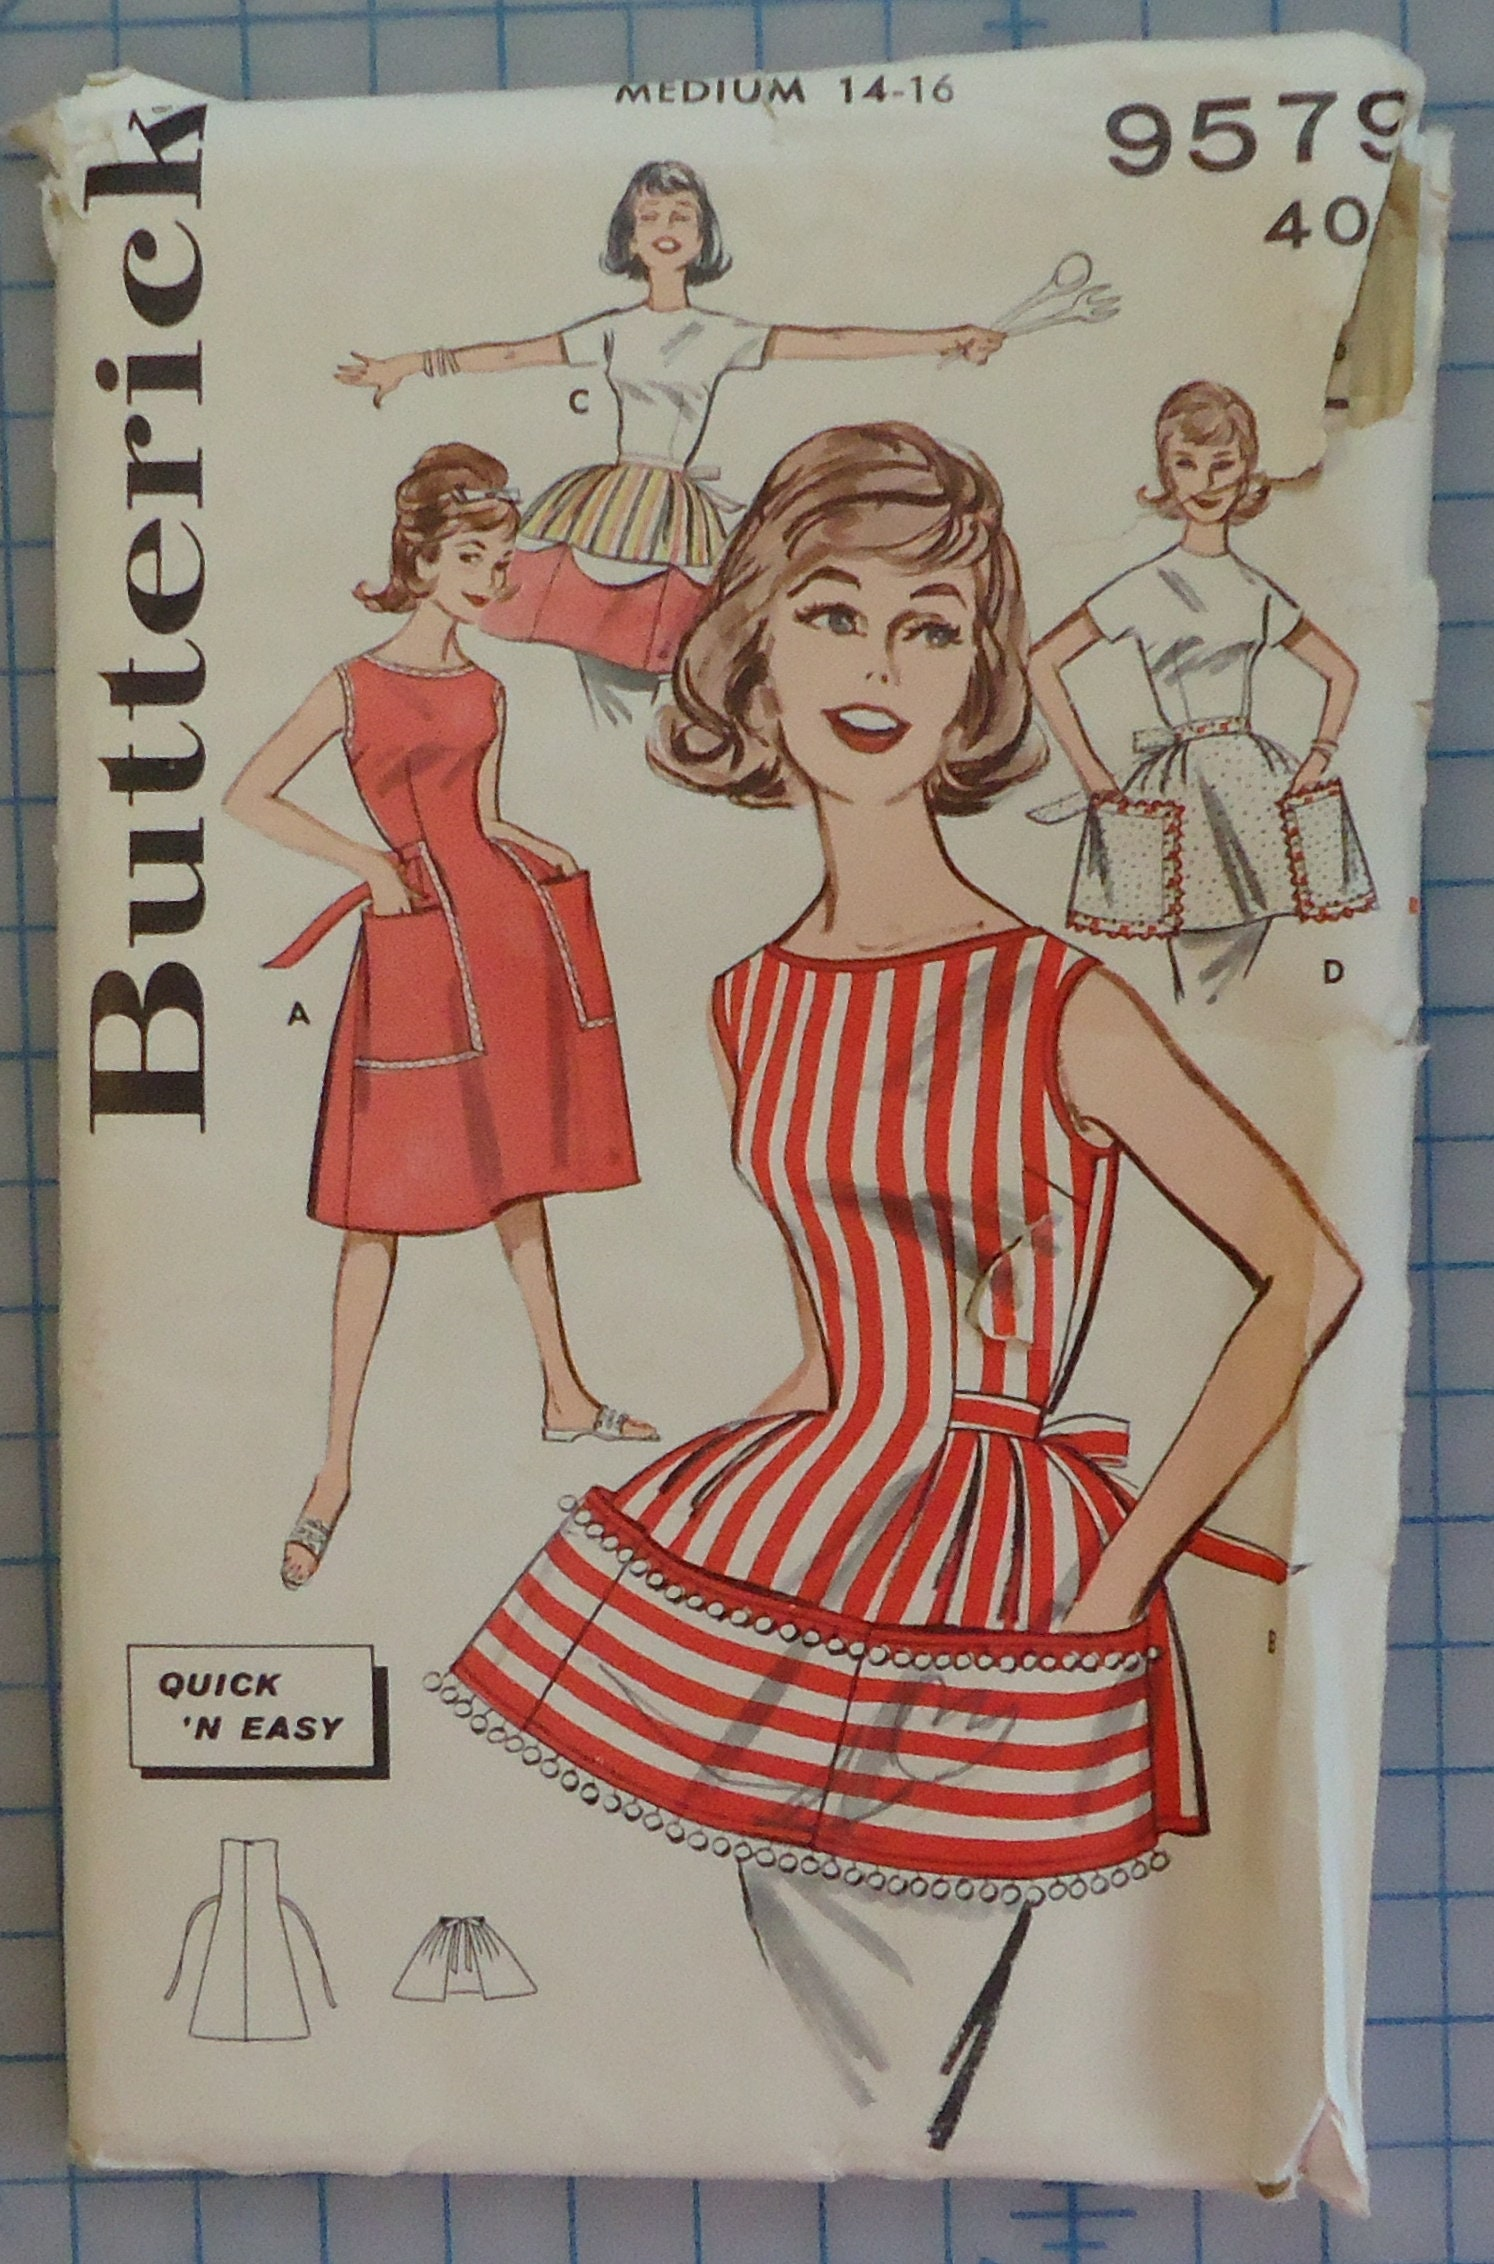 d11389dd62 Butterick 9579 1960s Ladies Quick and Easy Apron Vintage